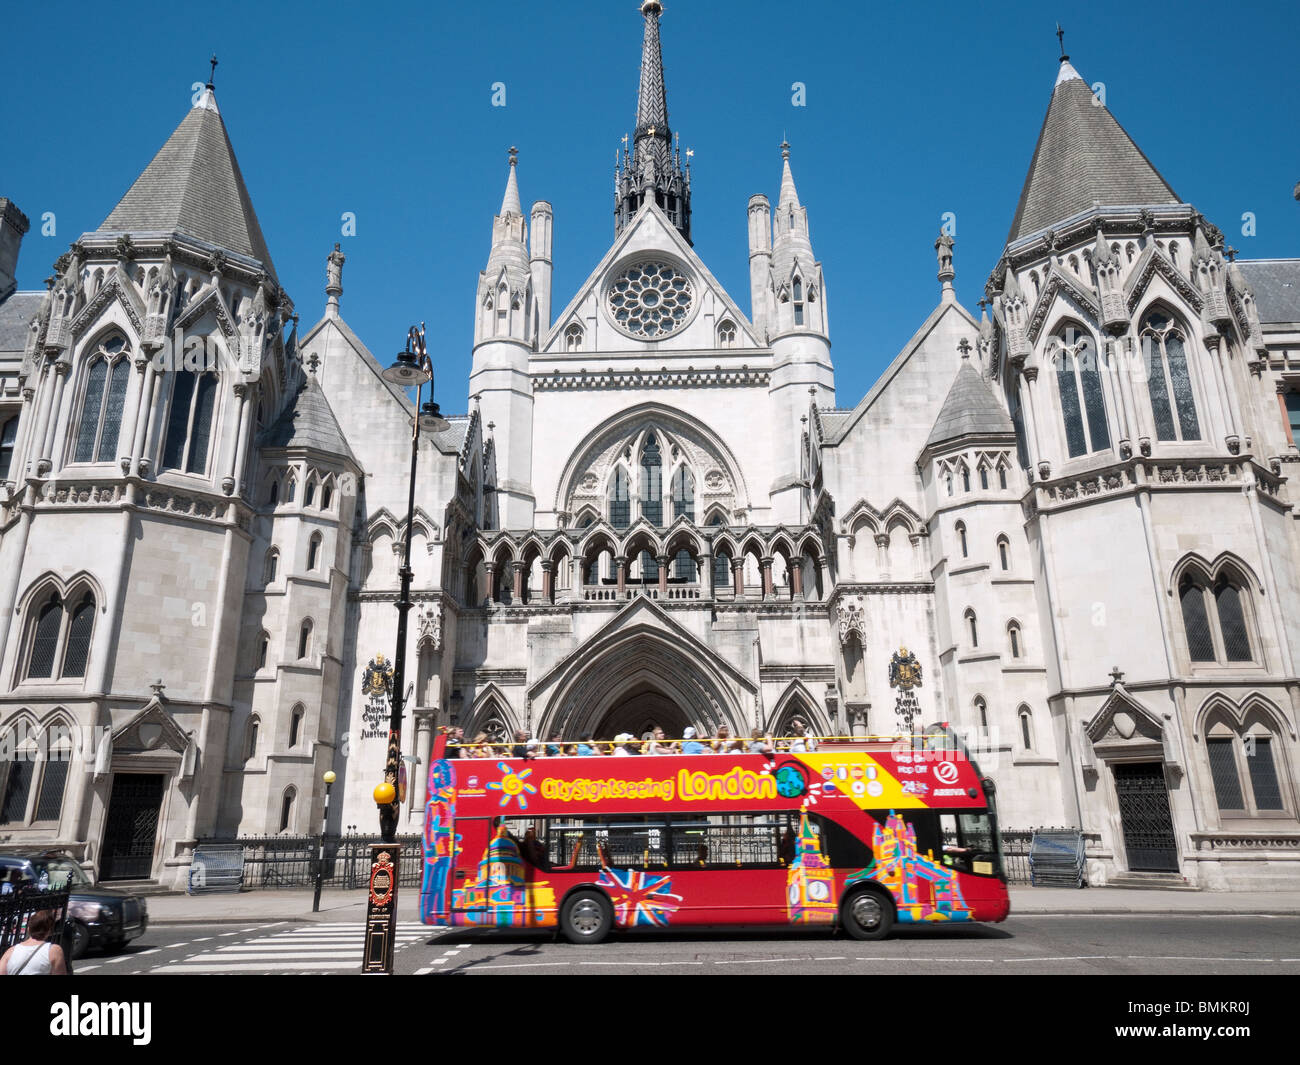 Royal courts of Justice London, England - Stock Image